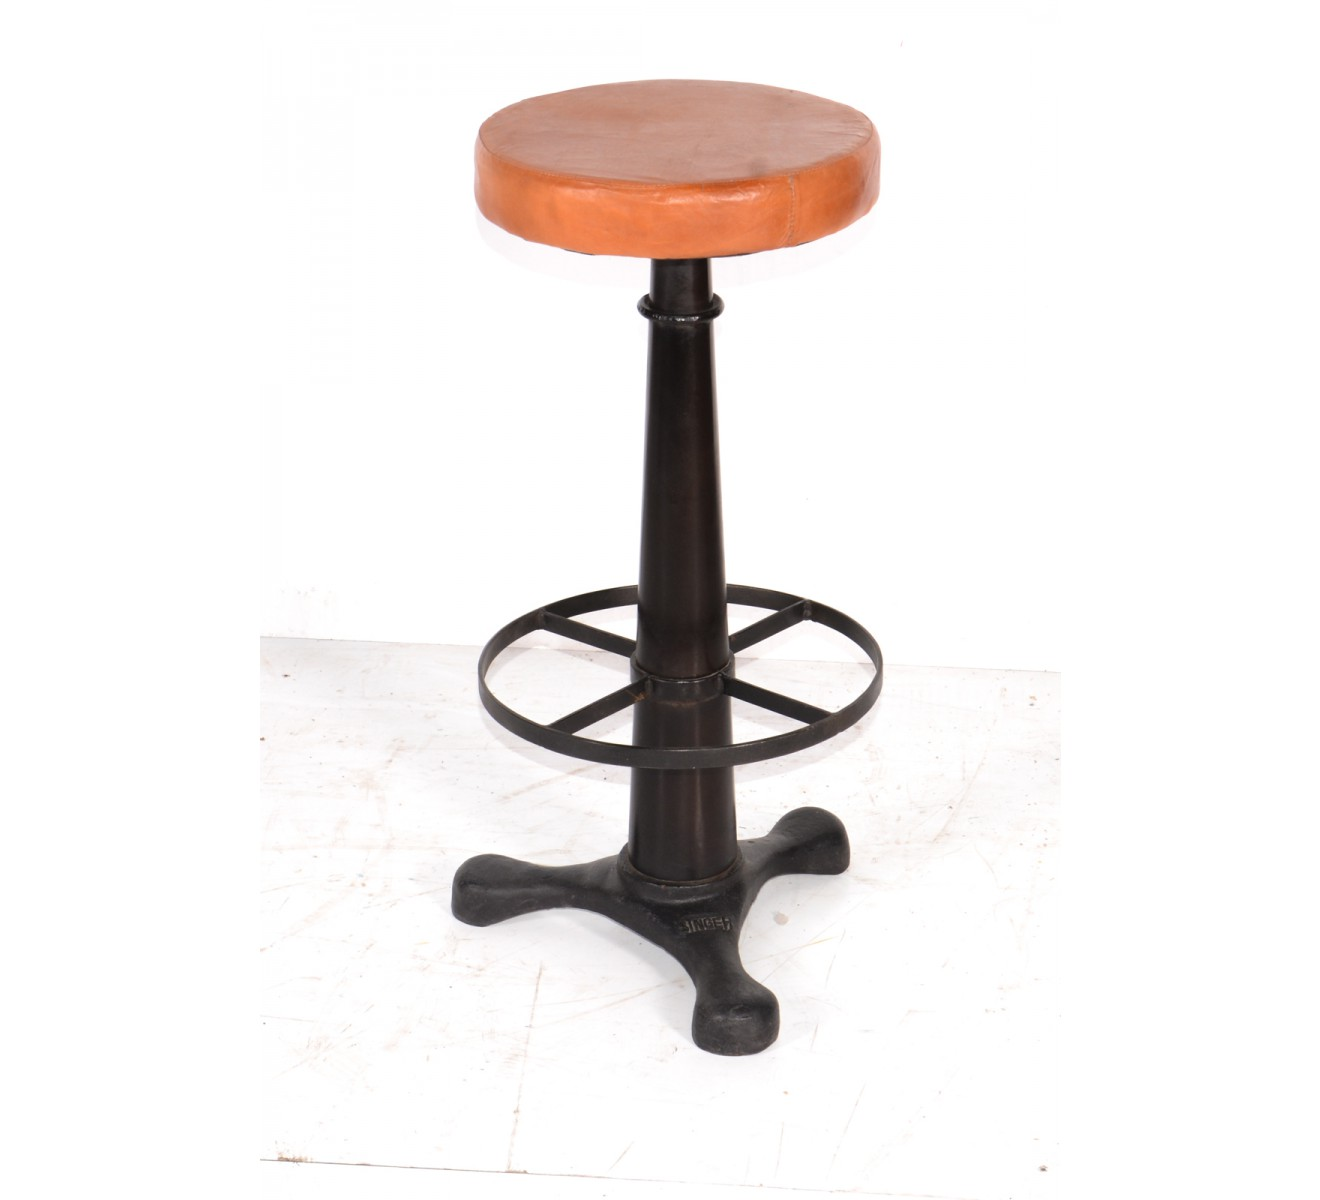 Tabourets Industriel Tabouret De Bar Industriel En Assise Cuir Réglable